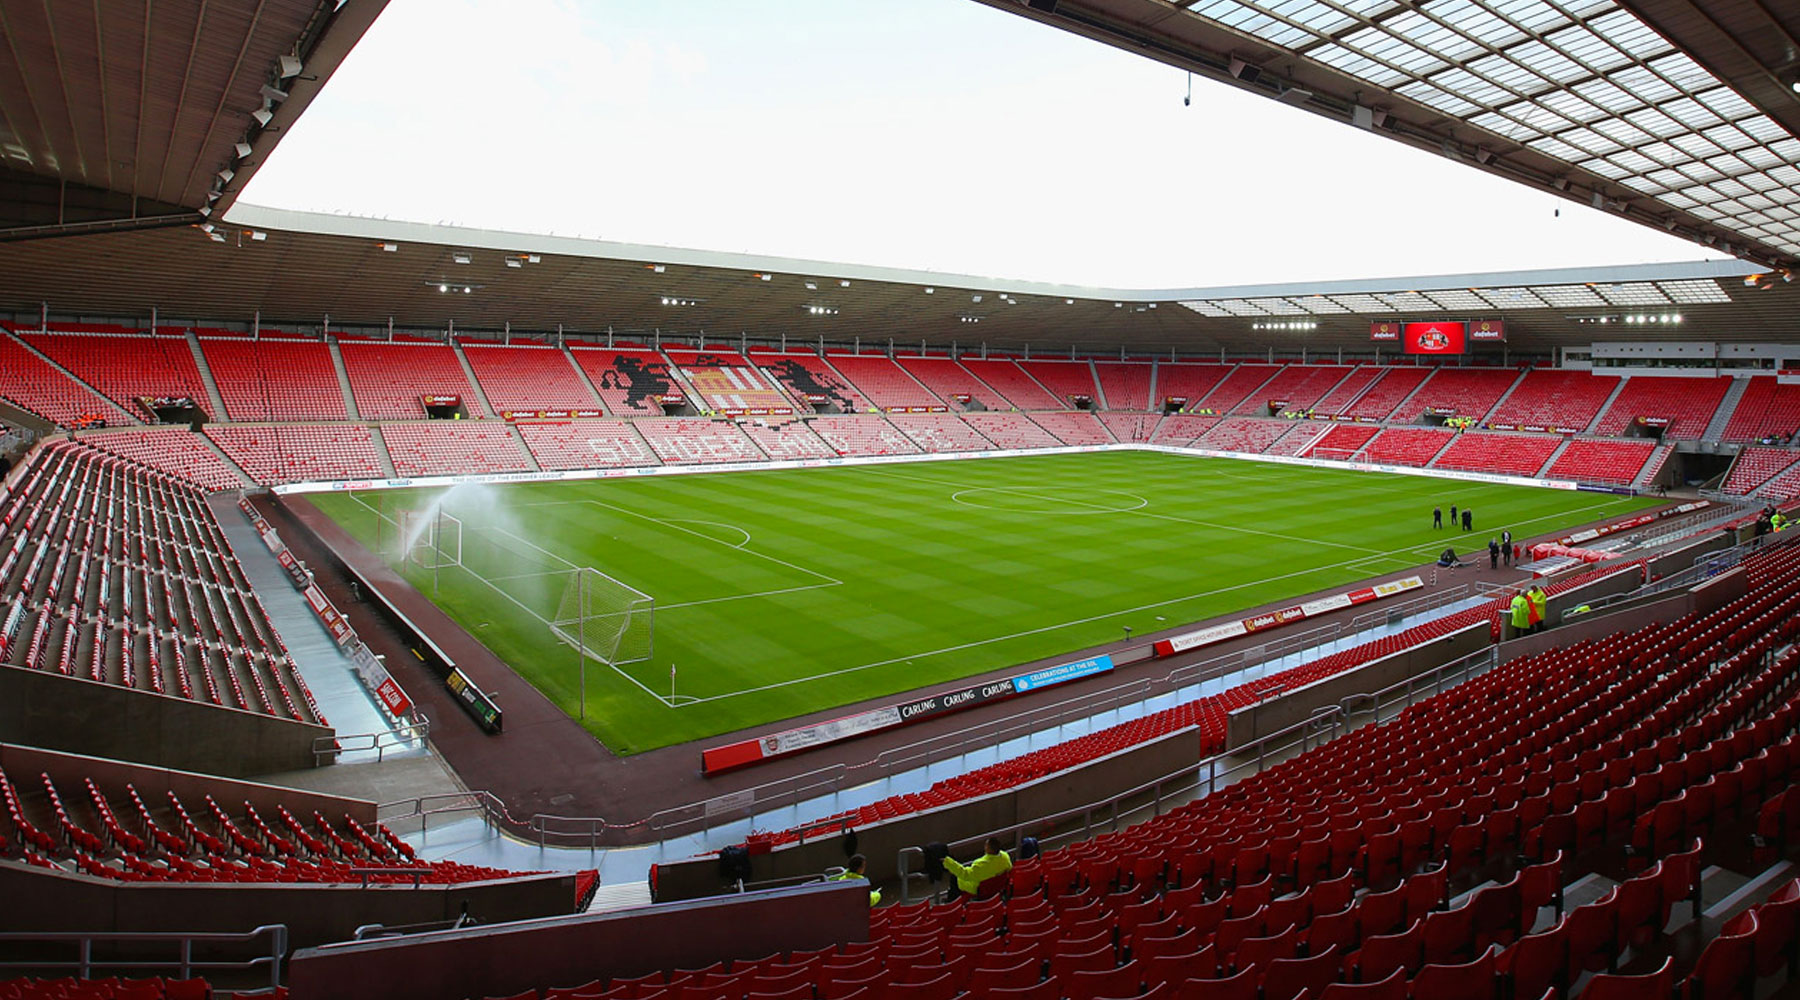 Wrenbridge Sport Stadium of Light